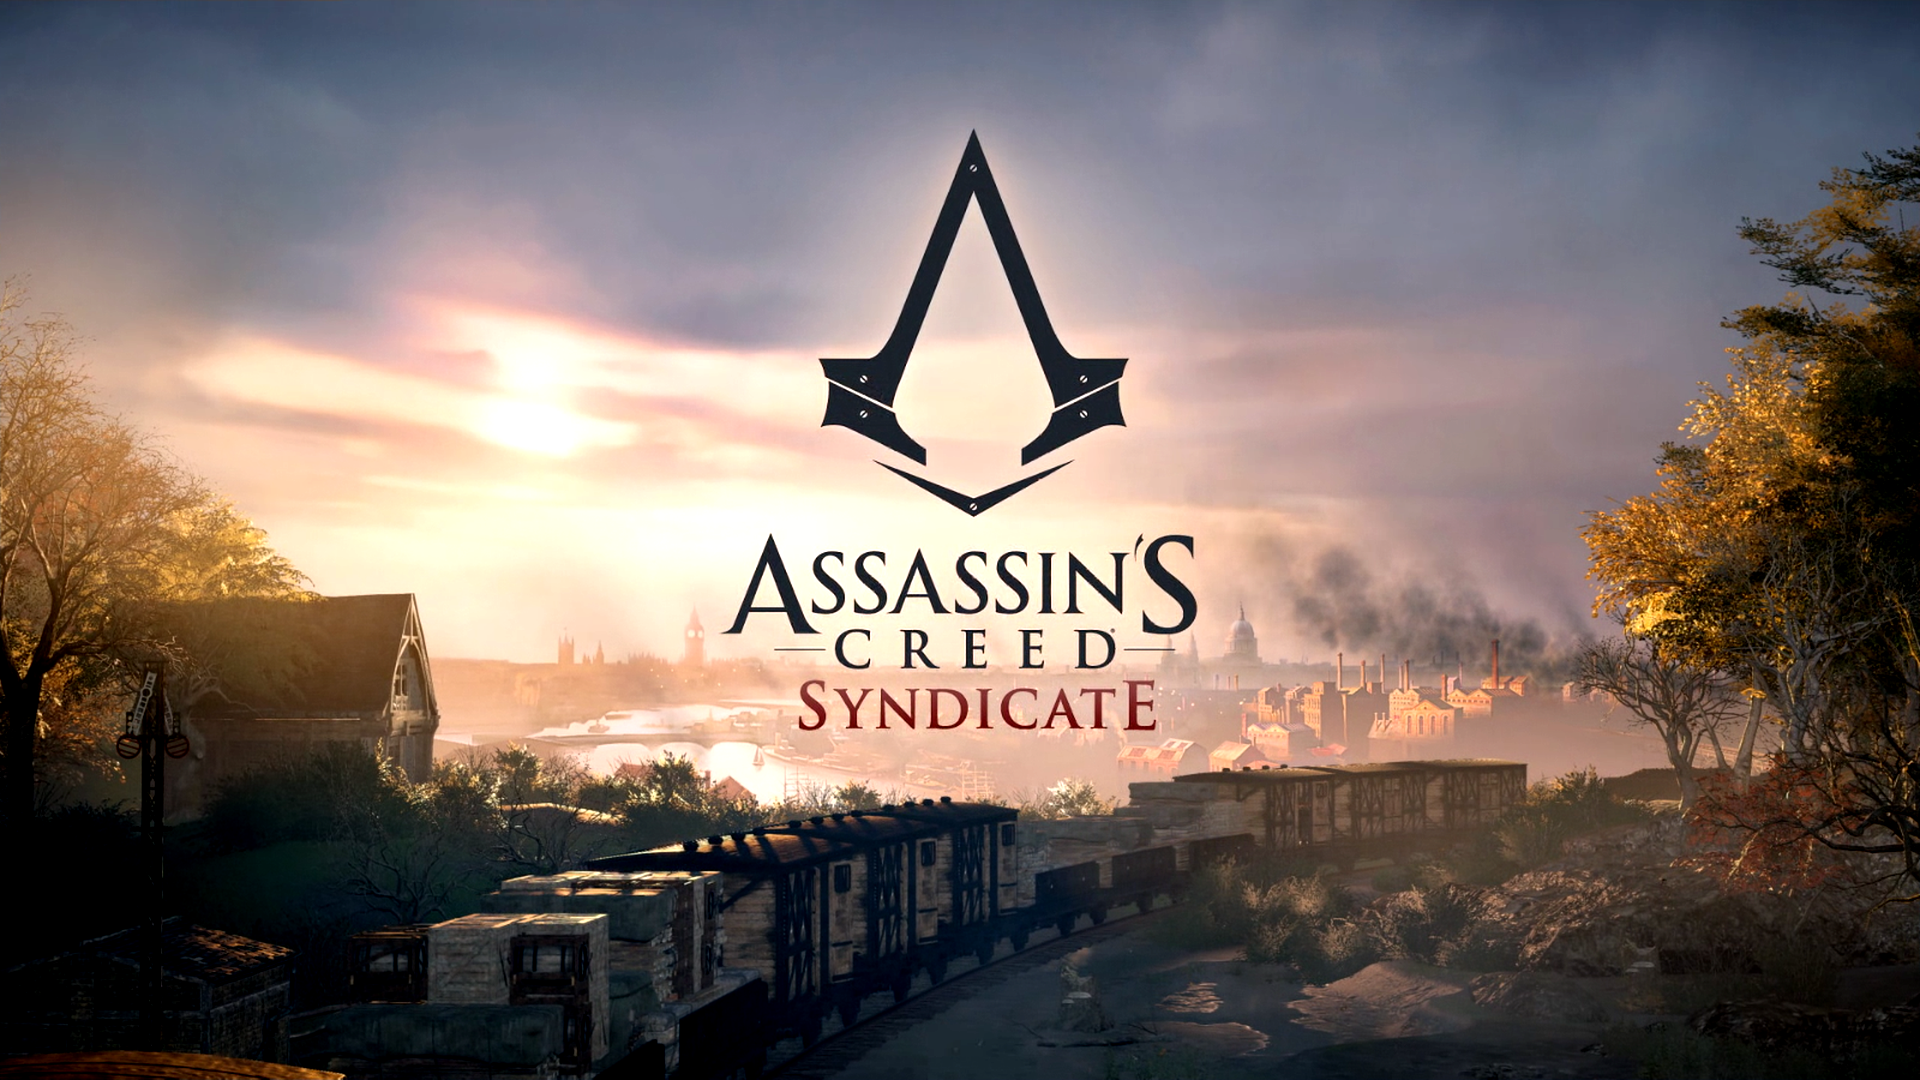 S Hd Image Wallpaper: Assassin's Creed: Syndicate Full HD Wallpaper And